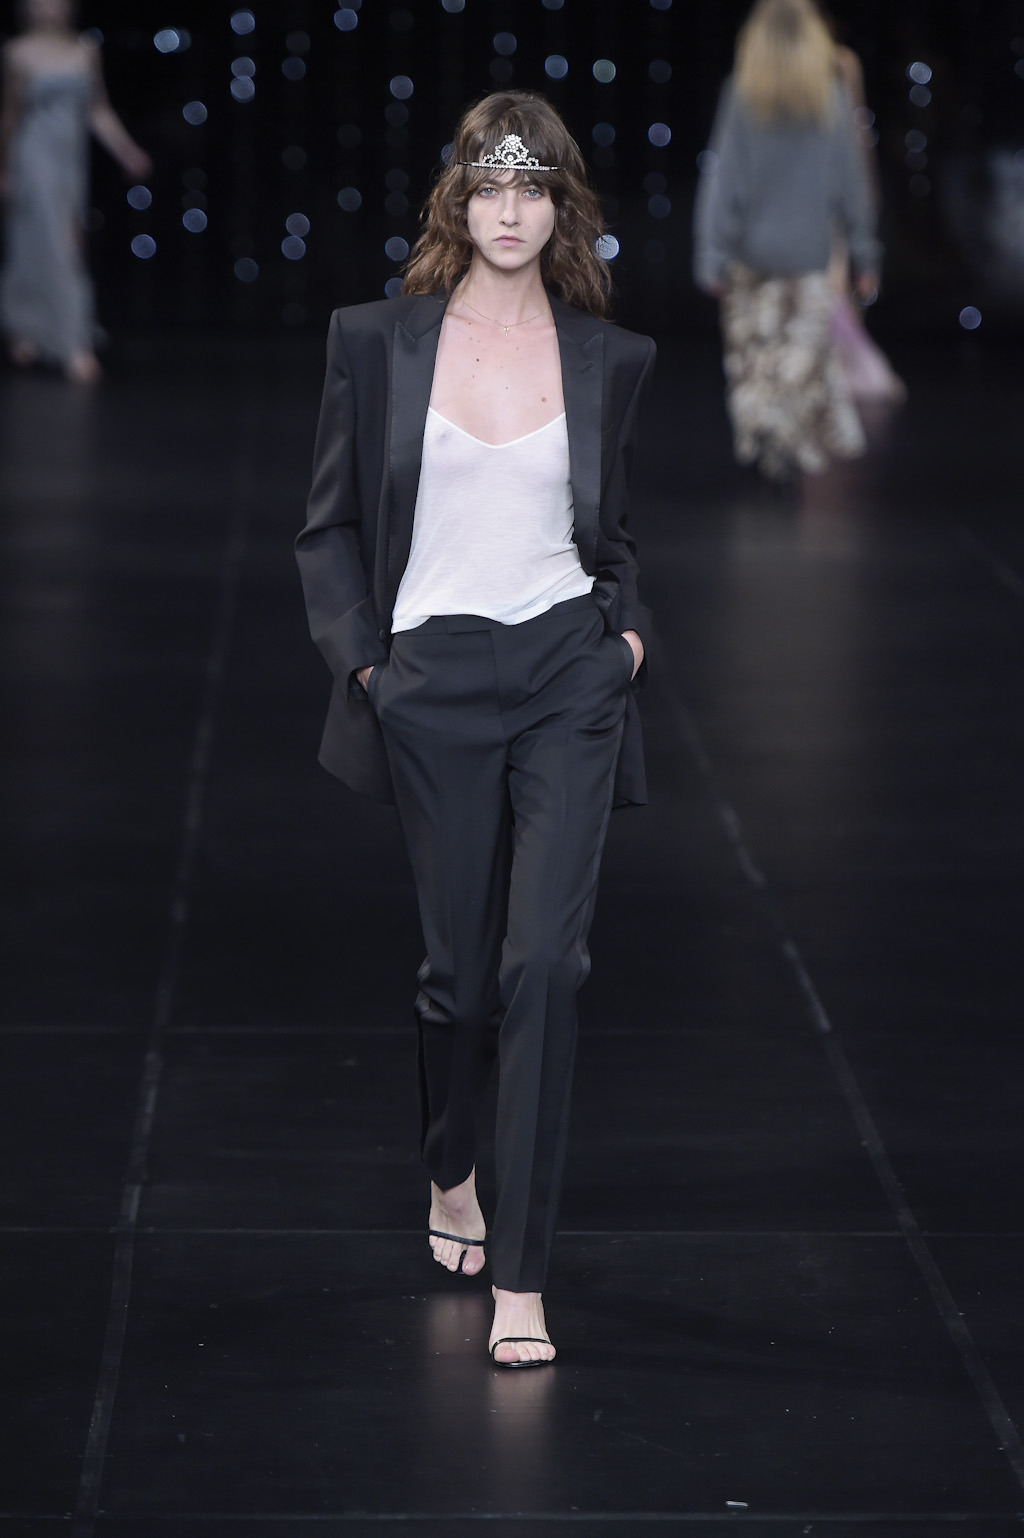 saint-laurent-s16-52.jpg